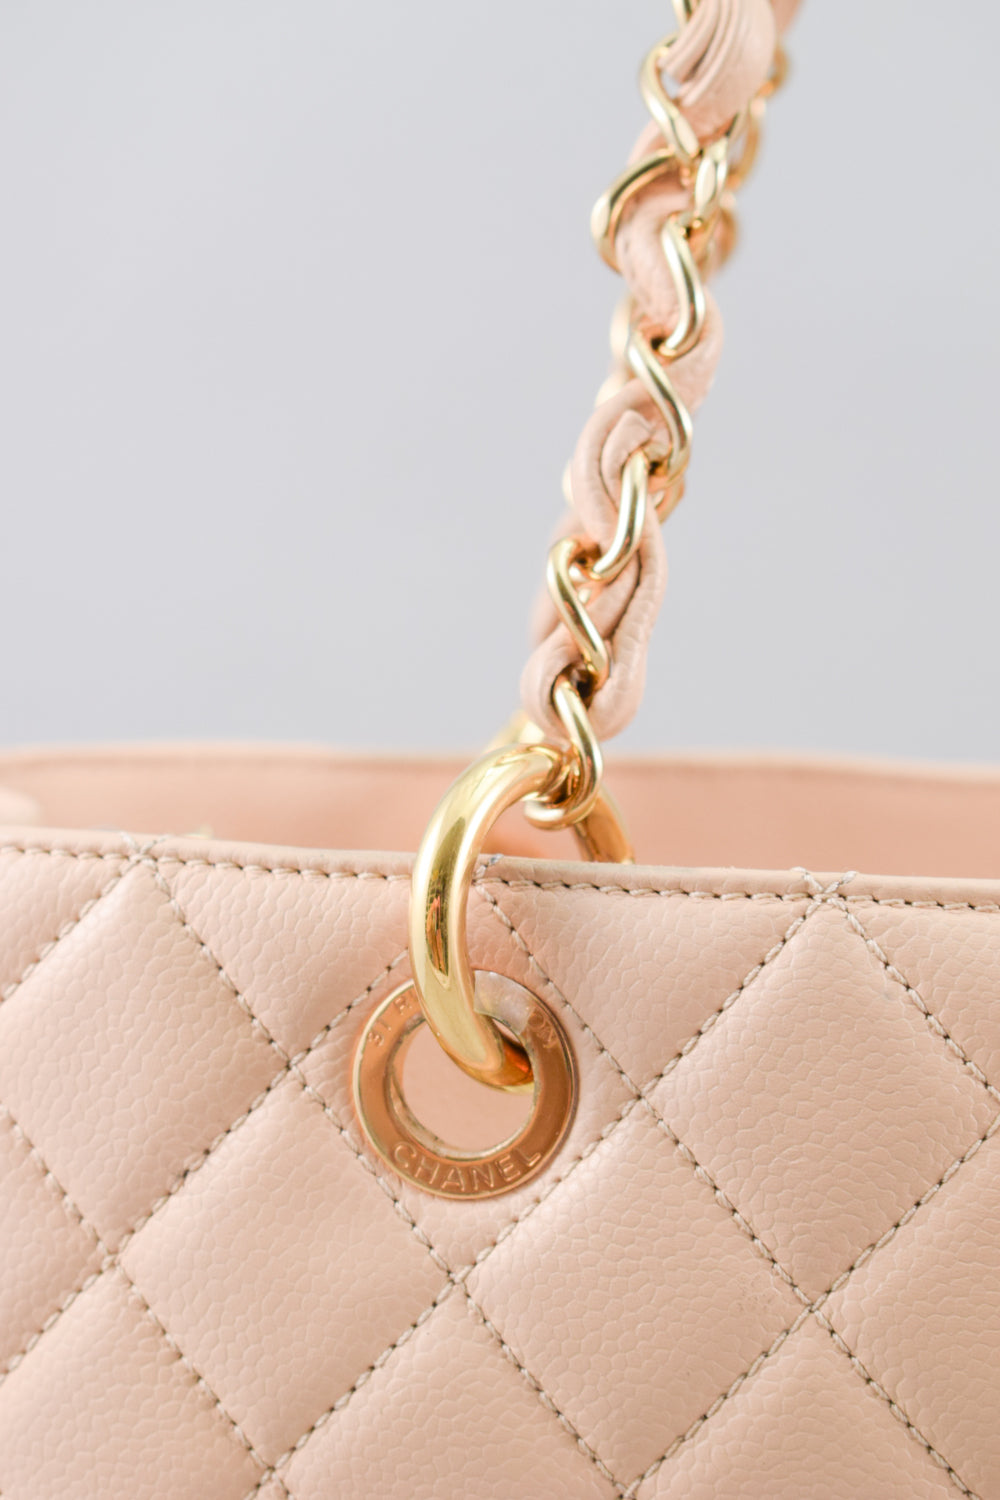 Chanel Beige Caviar Leather Grand Shopper Tote